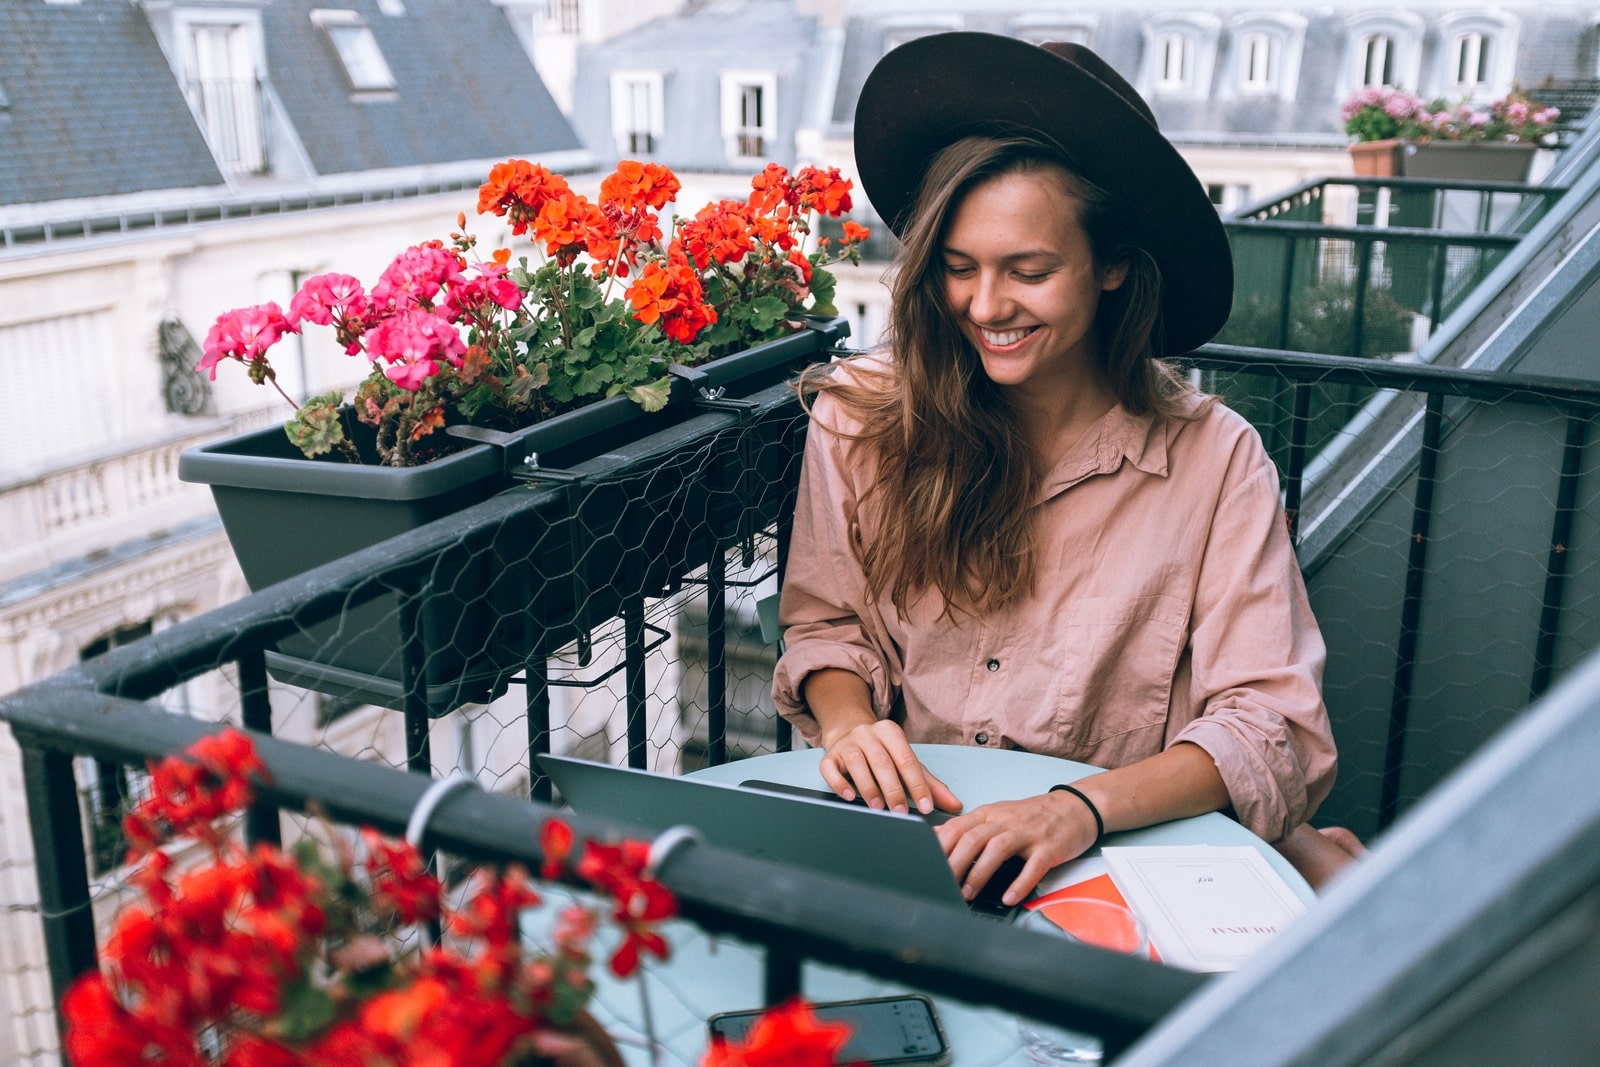 Foto von Daria Shevtsova: https://www.canva.com/photos/MADyQx--2RY-woman-wearing-beige-dress-shirt-using-laptop-computer/